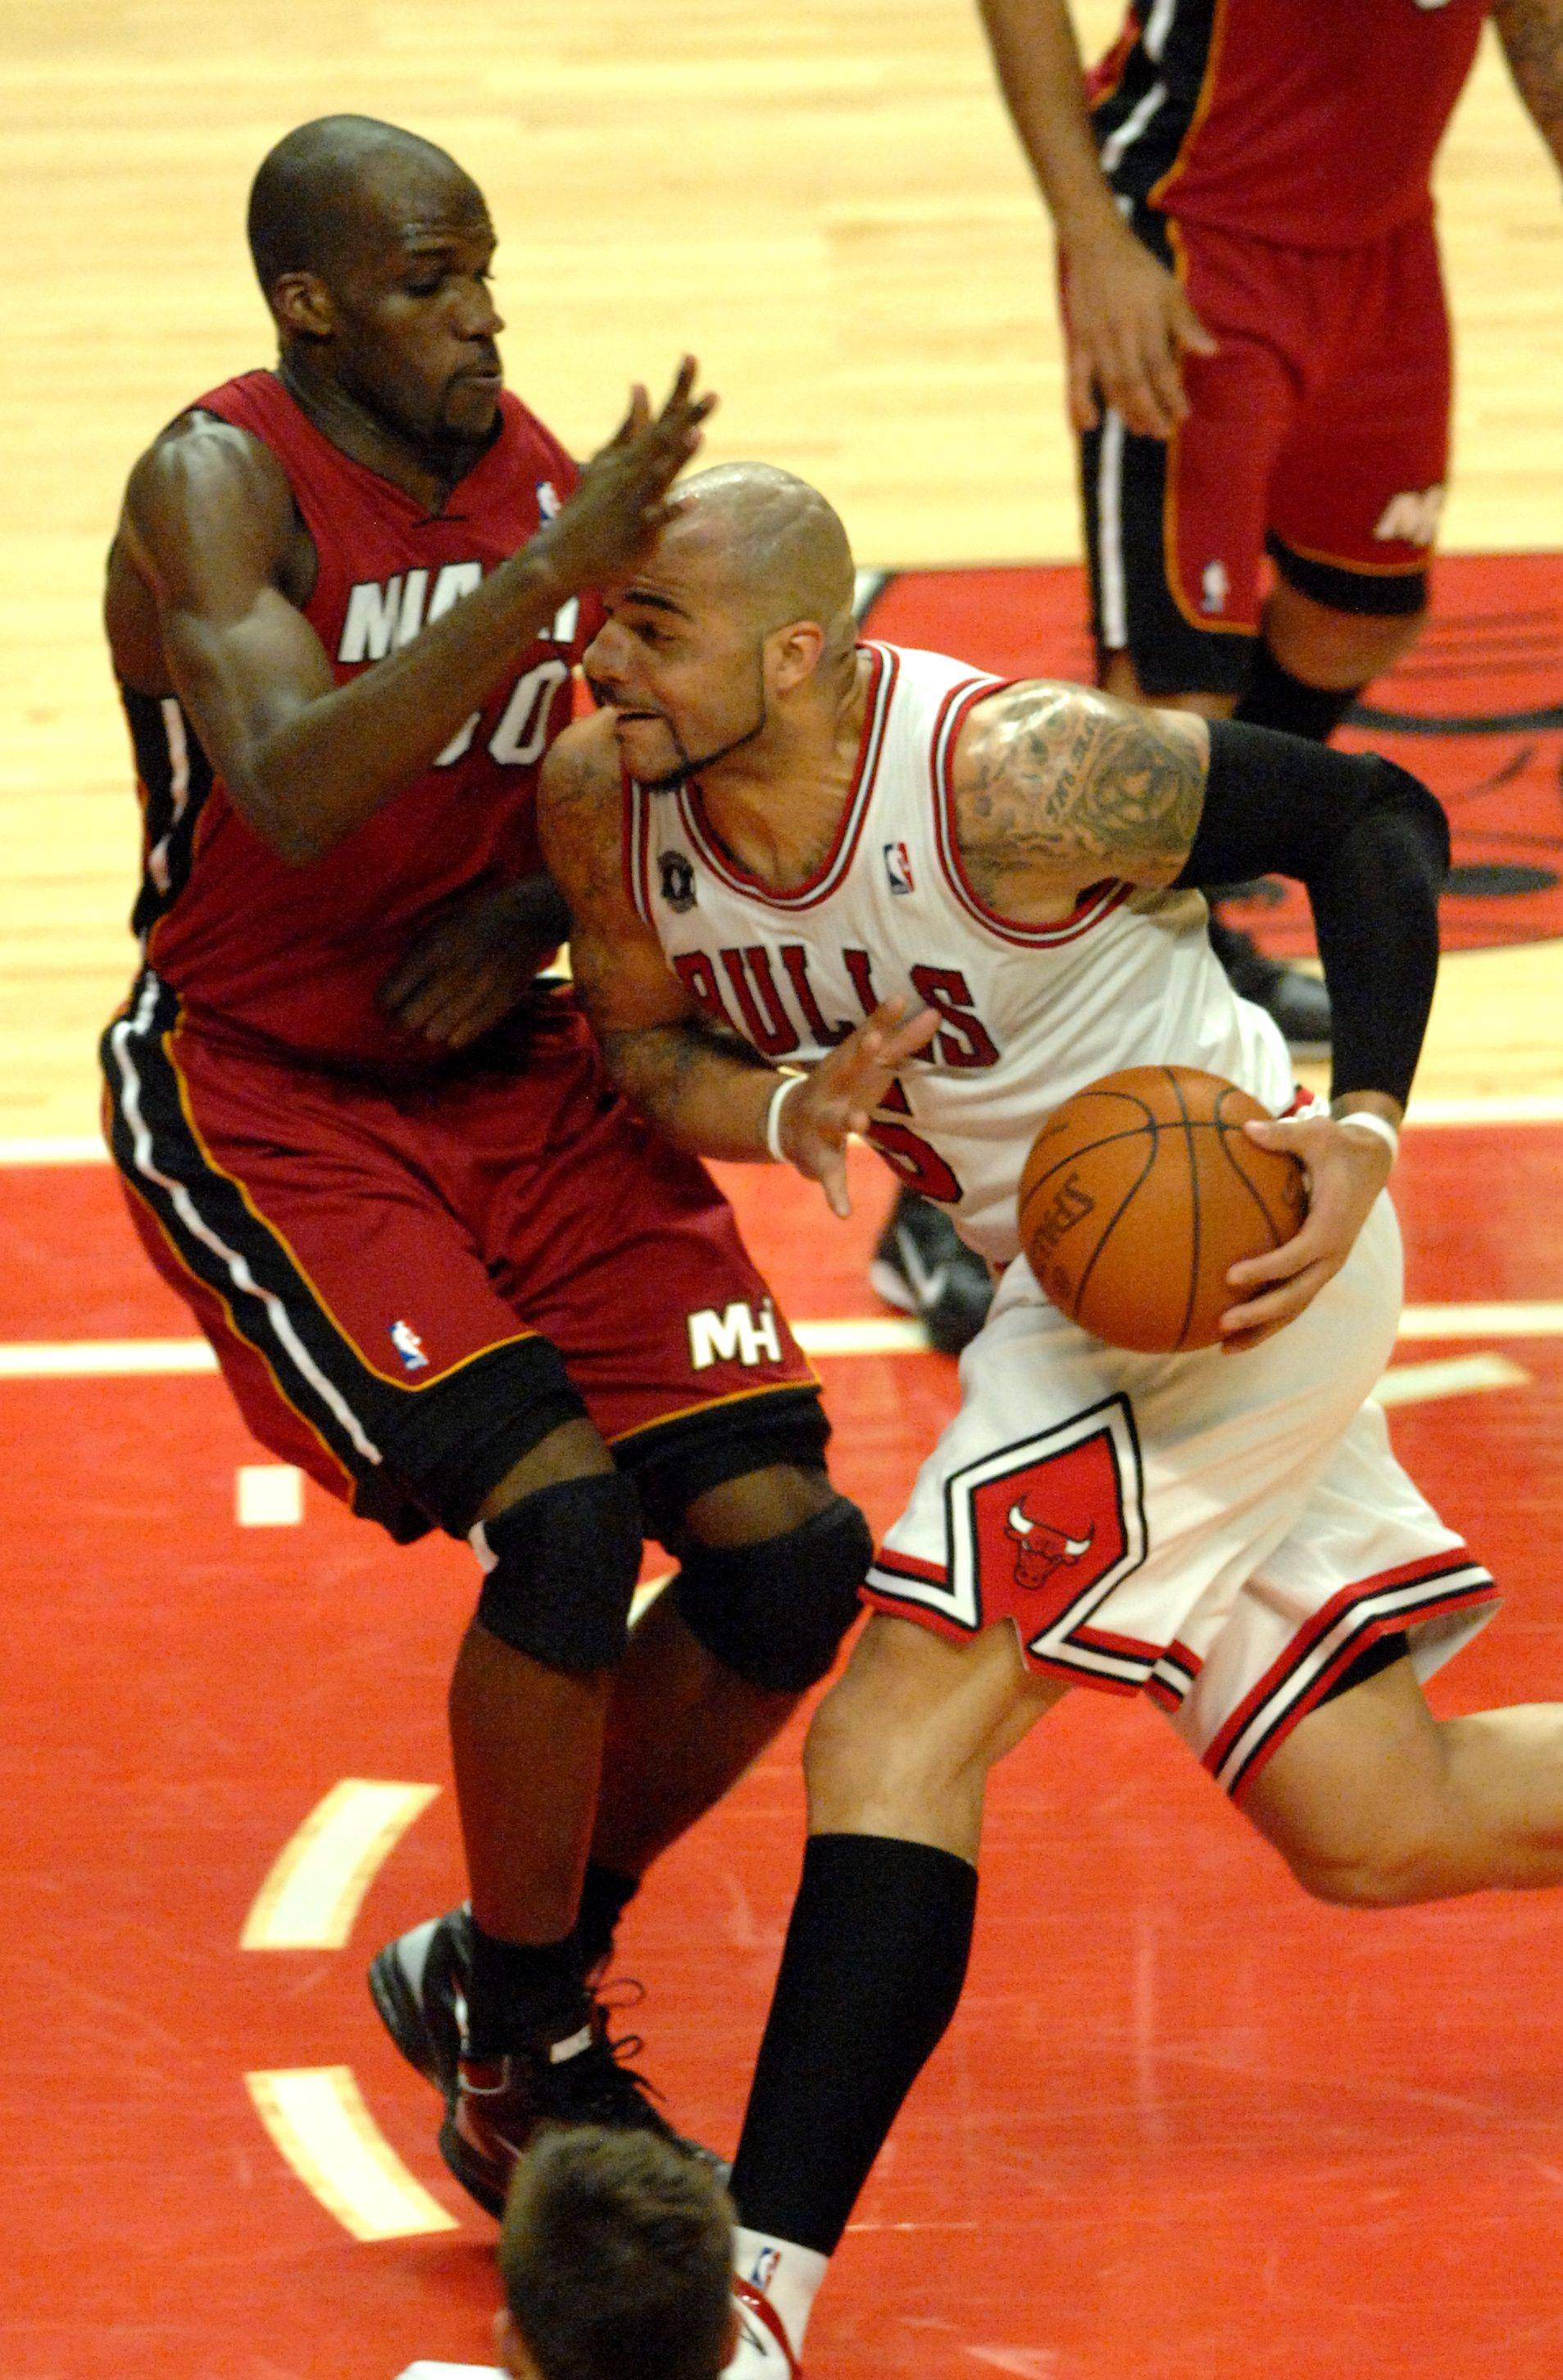 Carlos Boozer drives to the hoop against the defense of Miami's Joel Anthony Saturday night at the United Center.